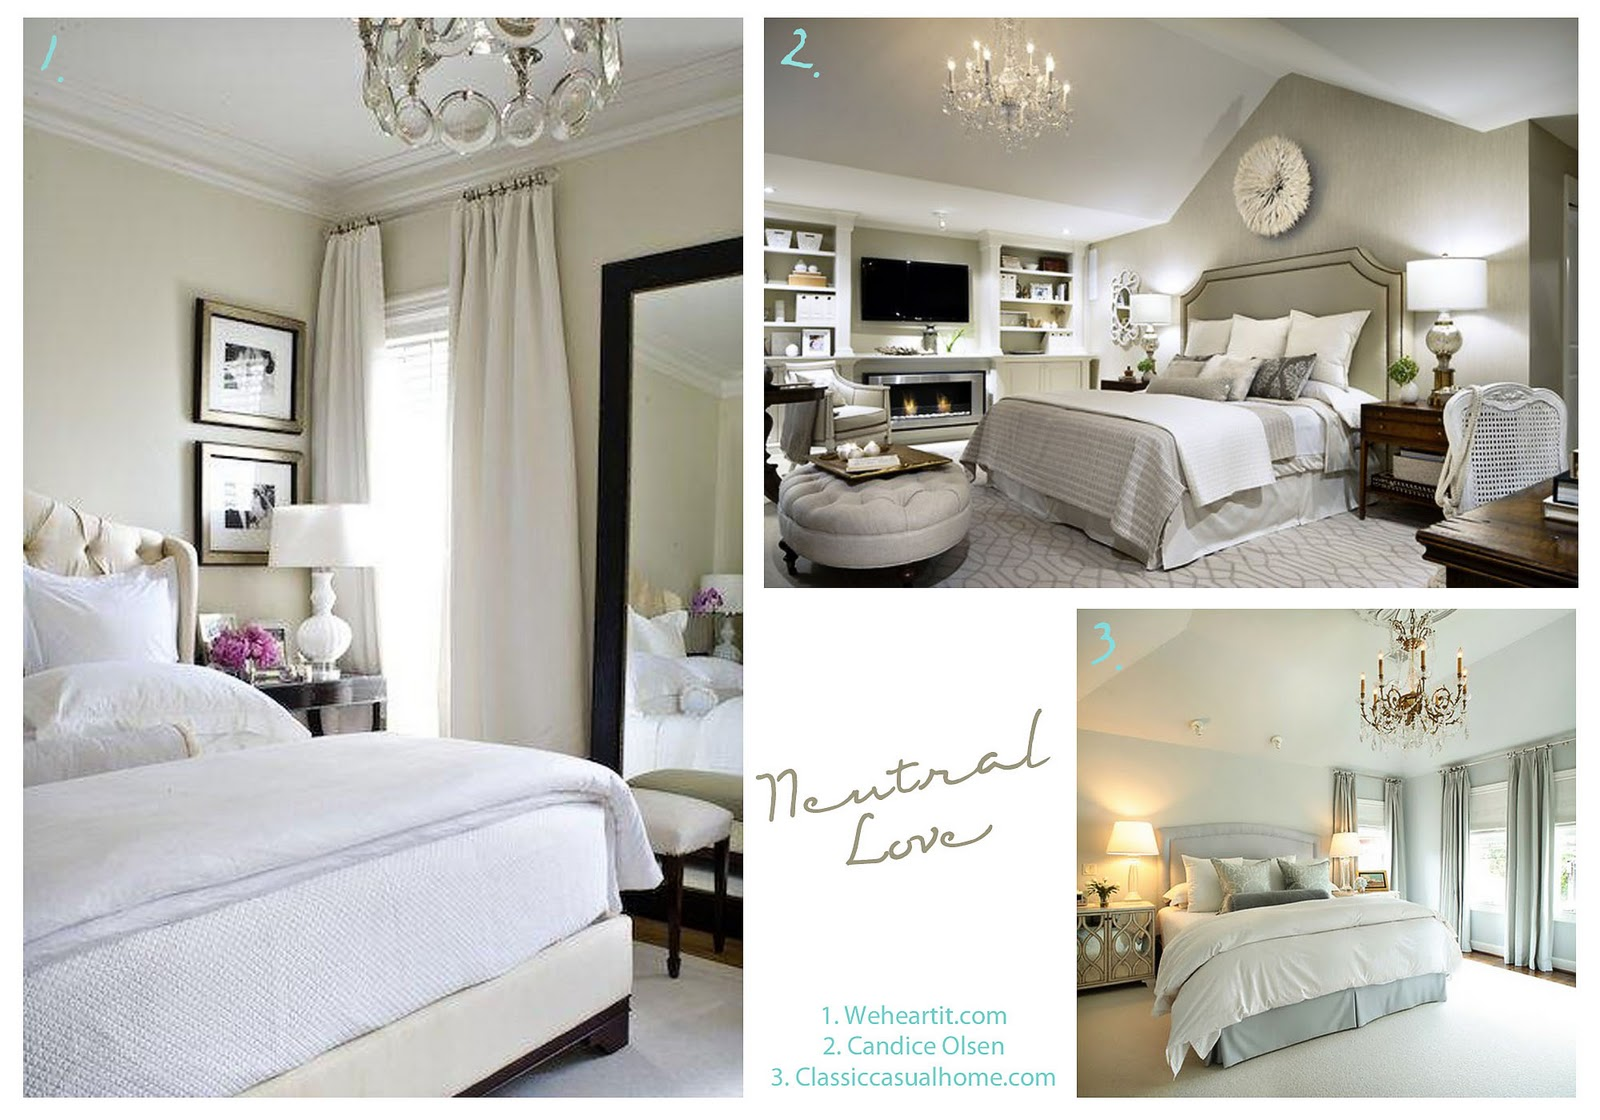 Candice Olson Designs Bedroom Awesome Brandon Barre Photography  Candice Olson Design  Kids Spaces Design Inspiration